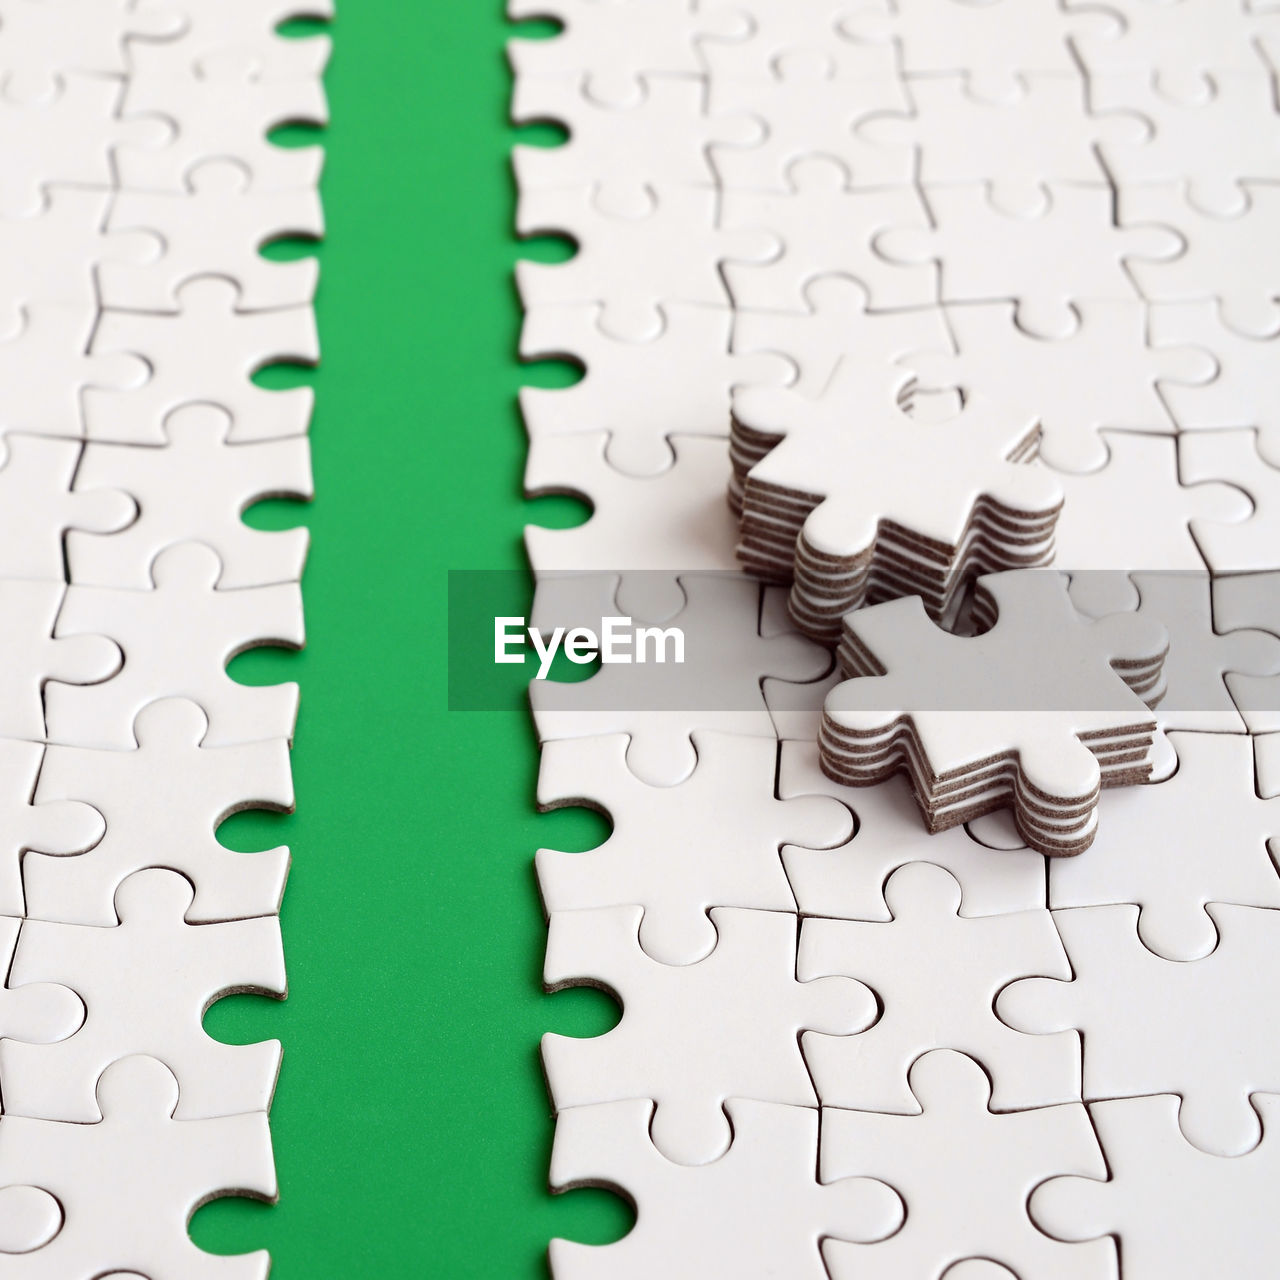 puzzle, indoors, jigsaw piece, jigsaw puzzle, pattern, full frame, connection, backgrounds, close-up, no people, white color, still life, leisure activity, green color, shape, solution, incomplete, design, strategy, high angle view